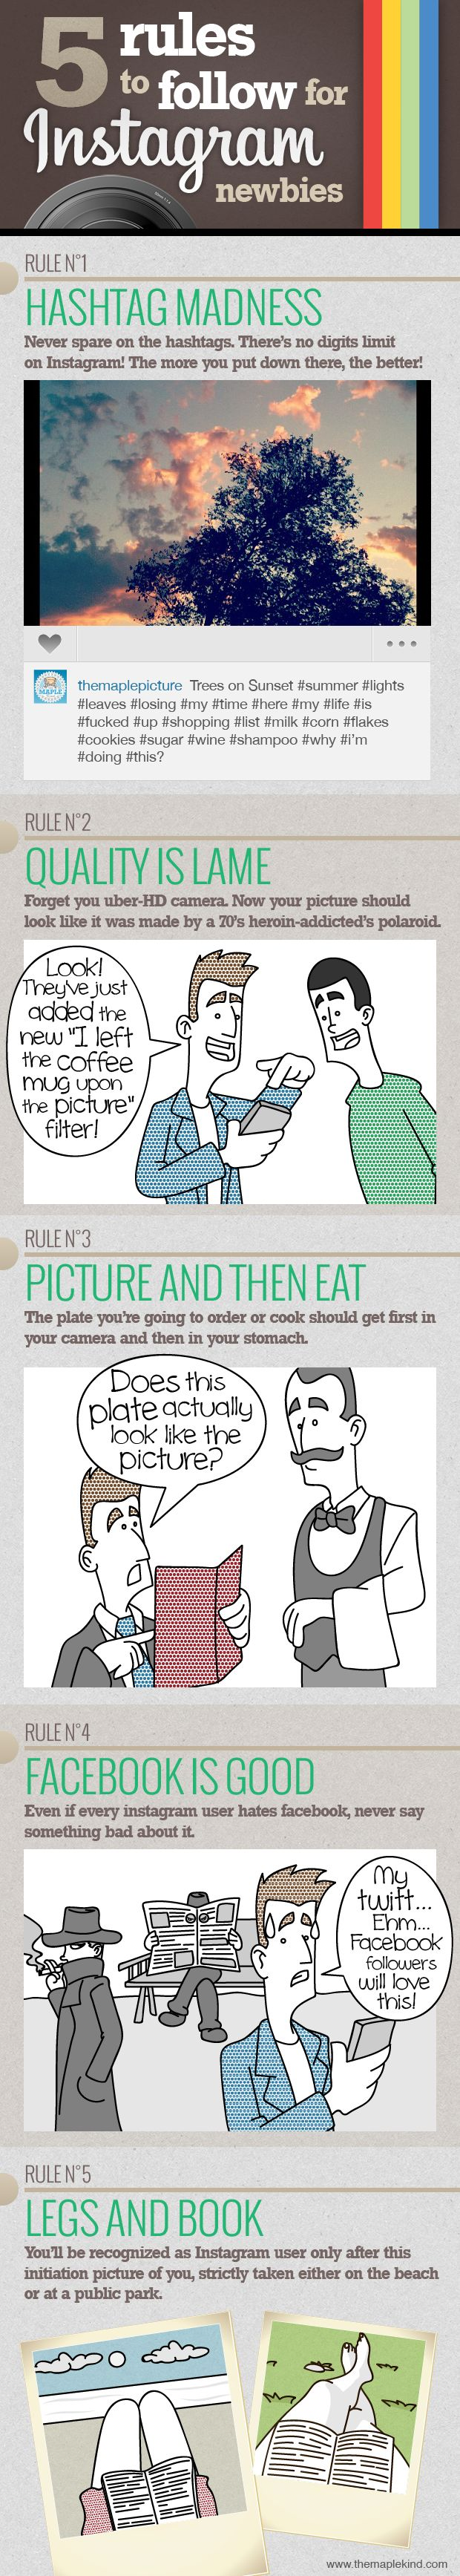 5 Rules to Follow for Instagram Newbies - [COMIC]